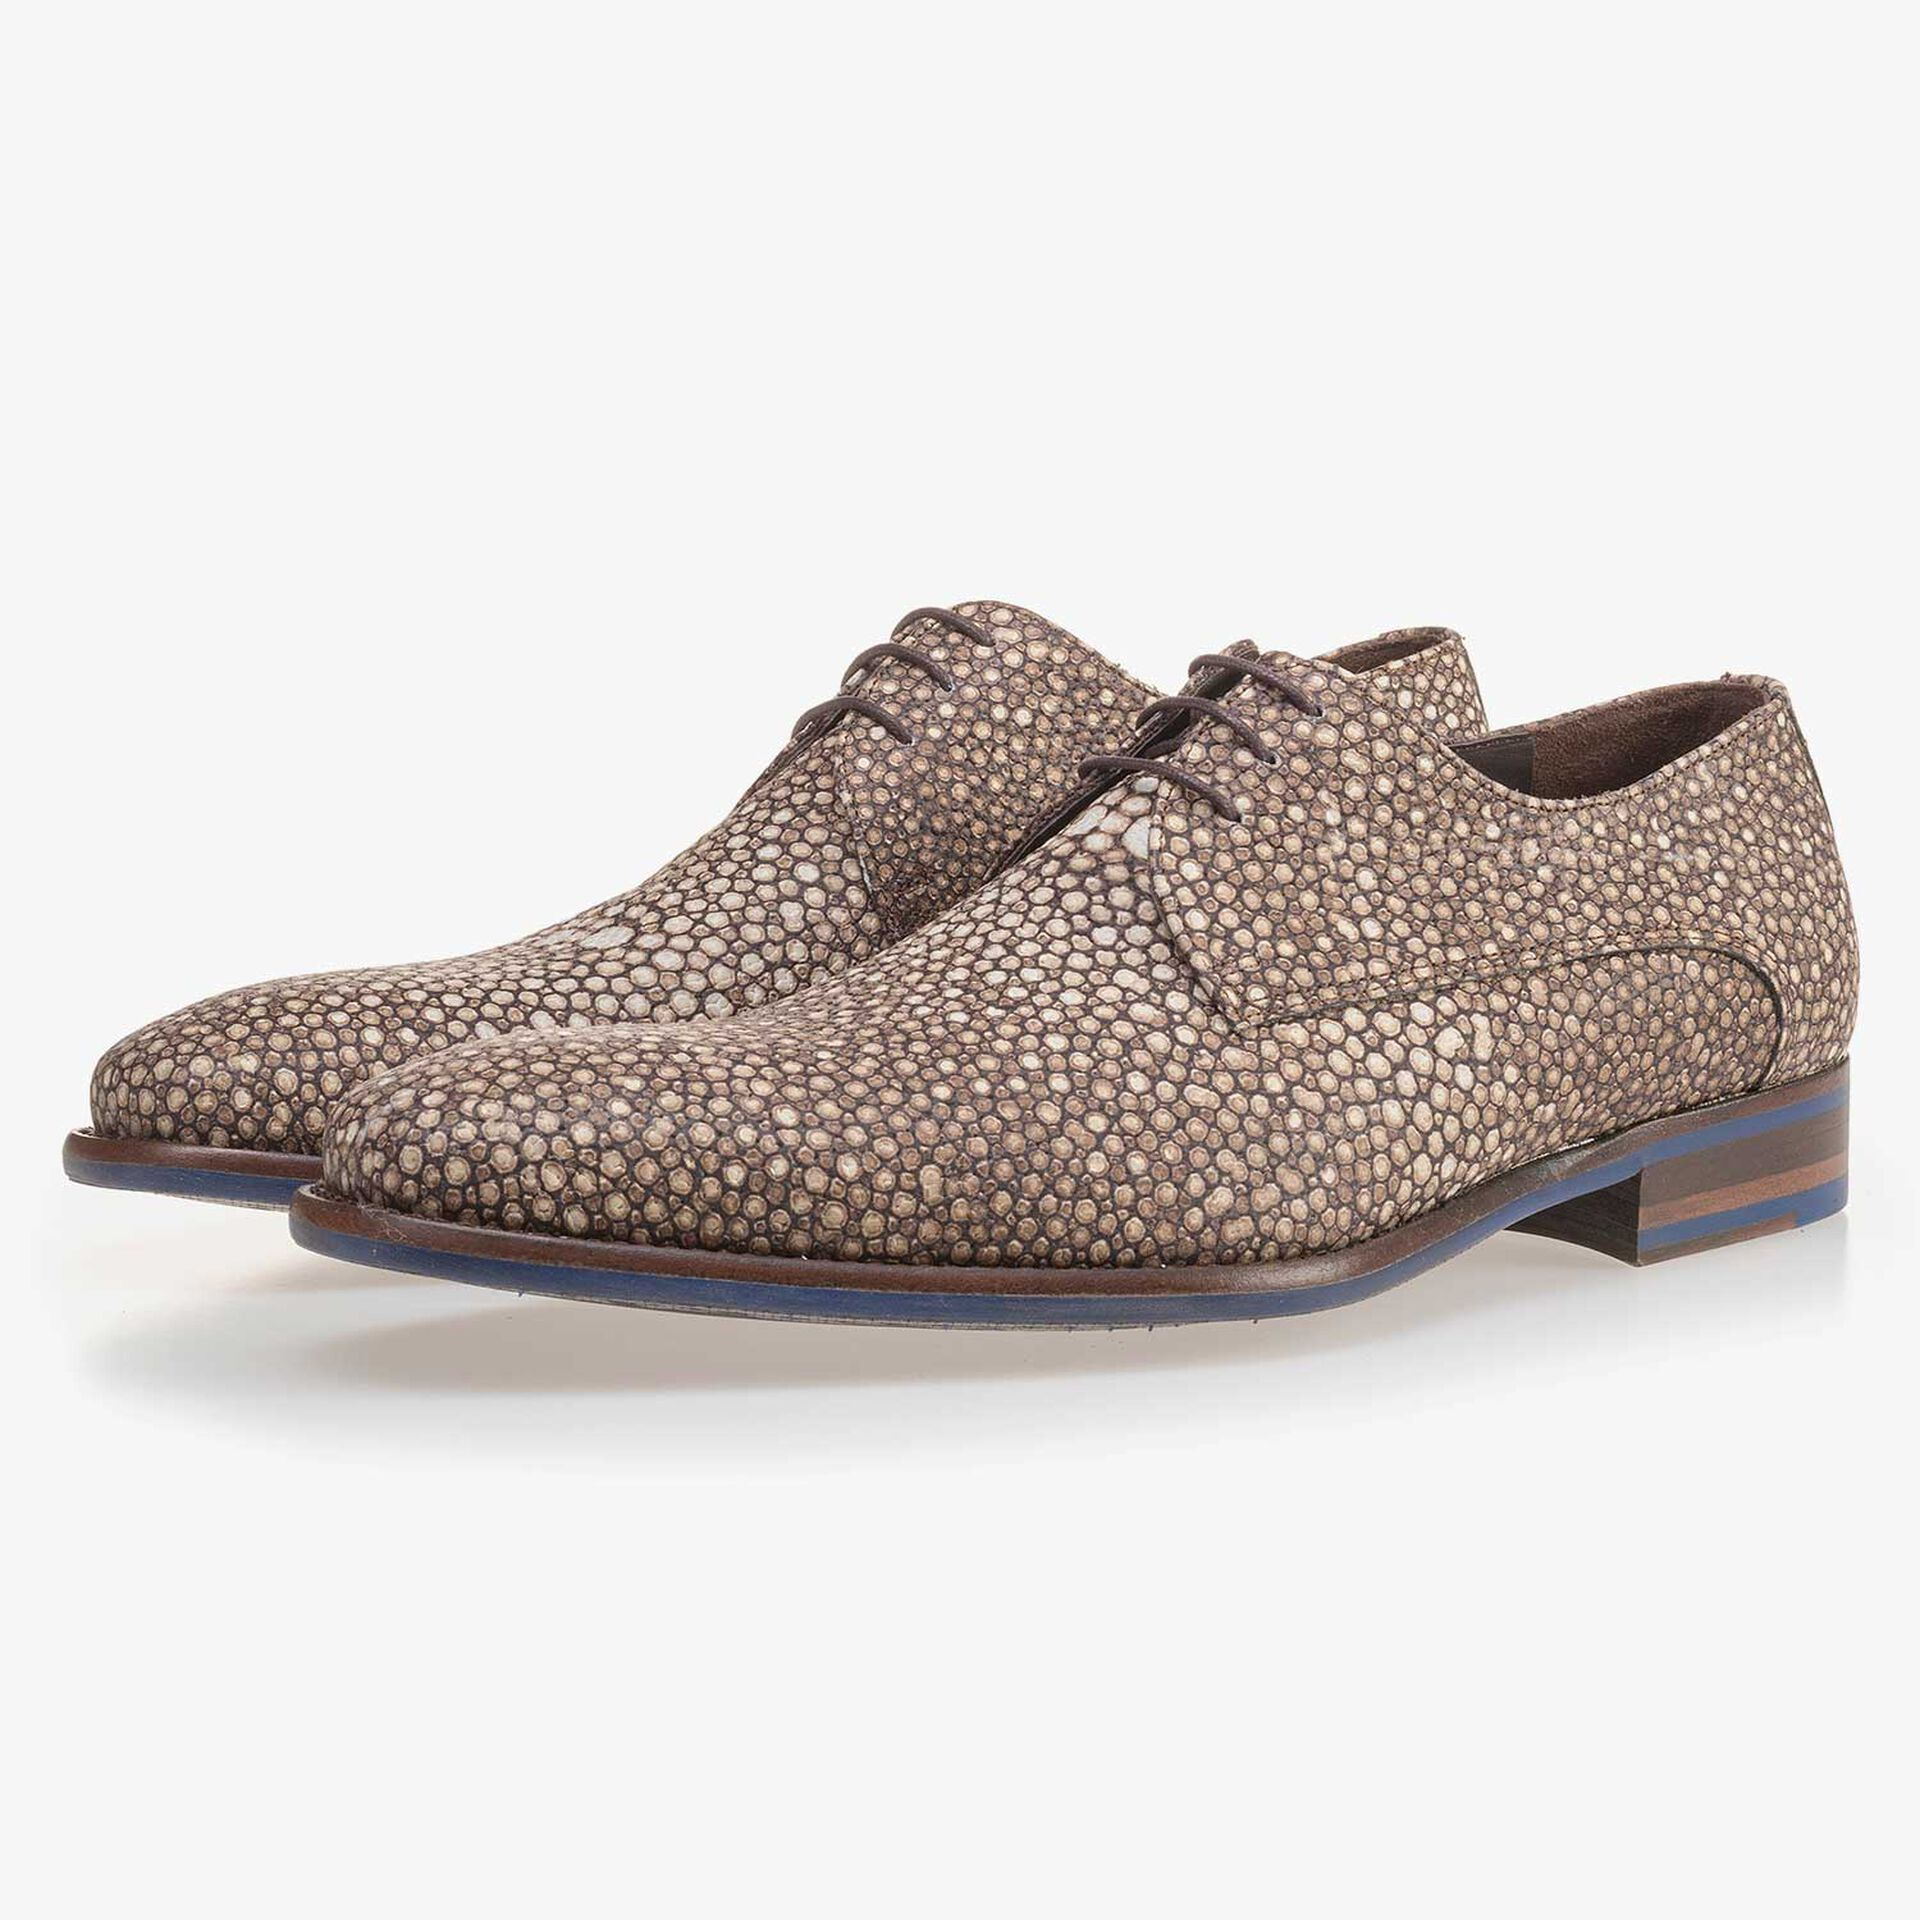 Brown, leather lace shoe with pattern